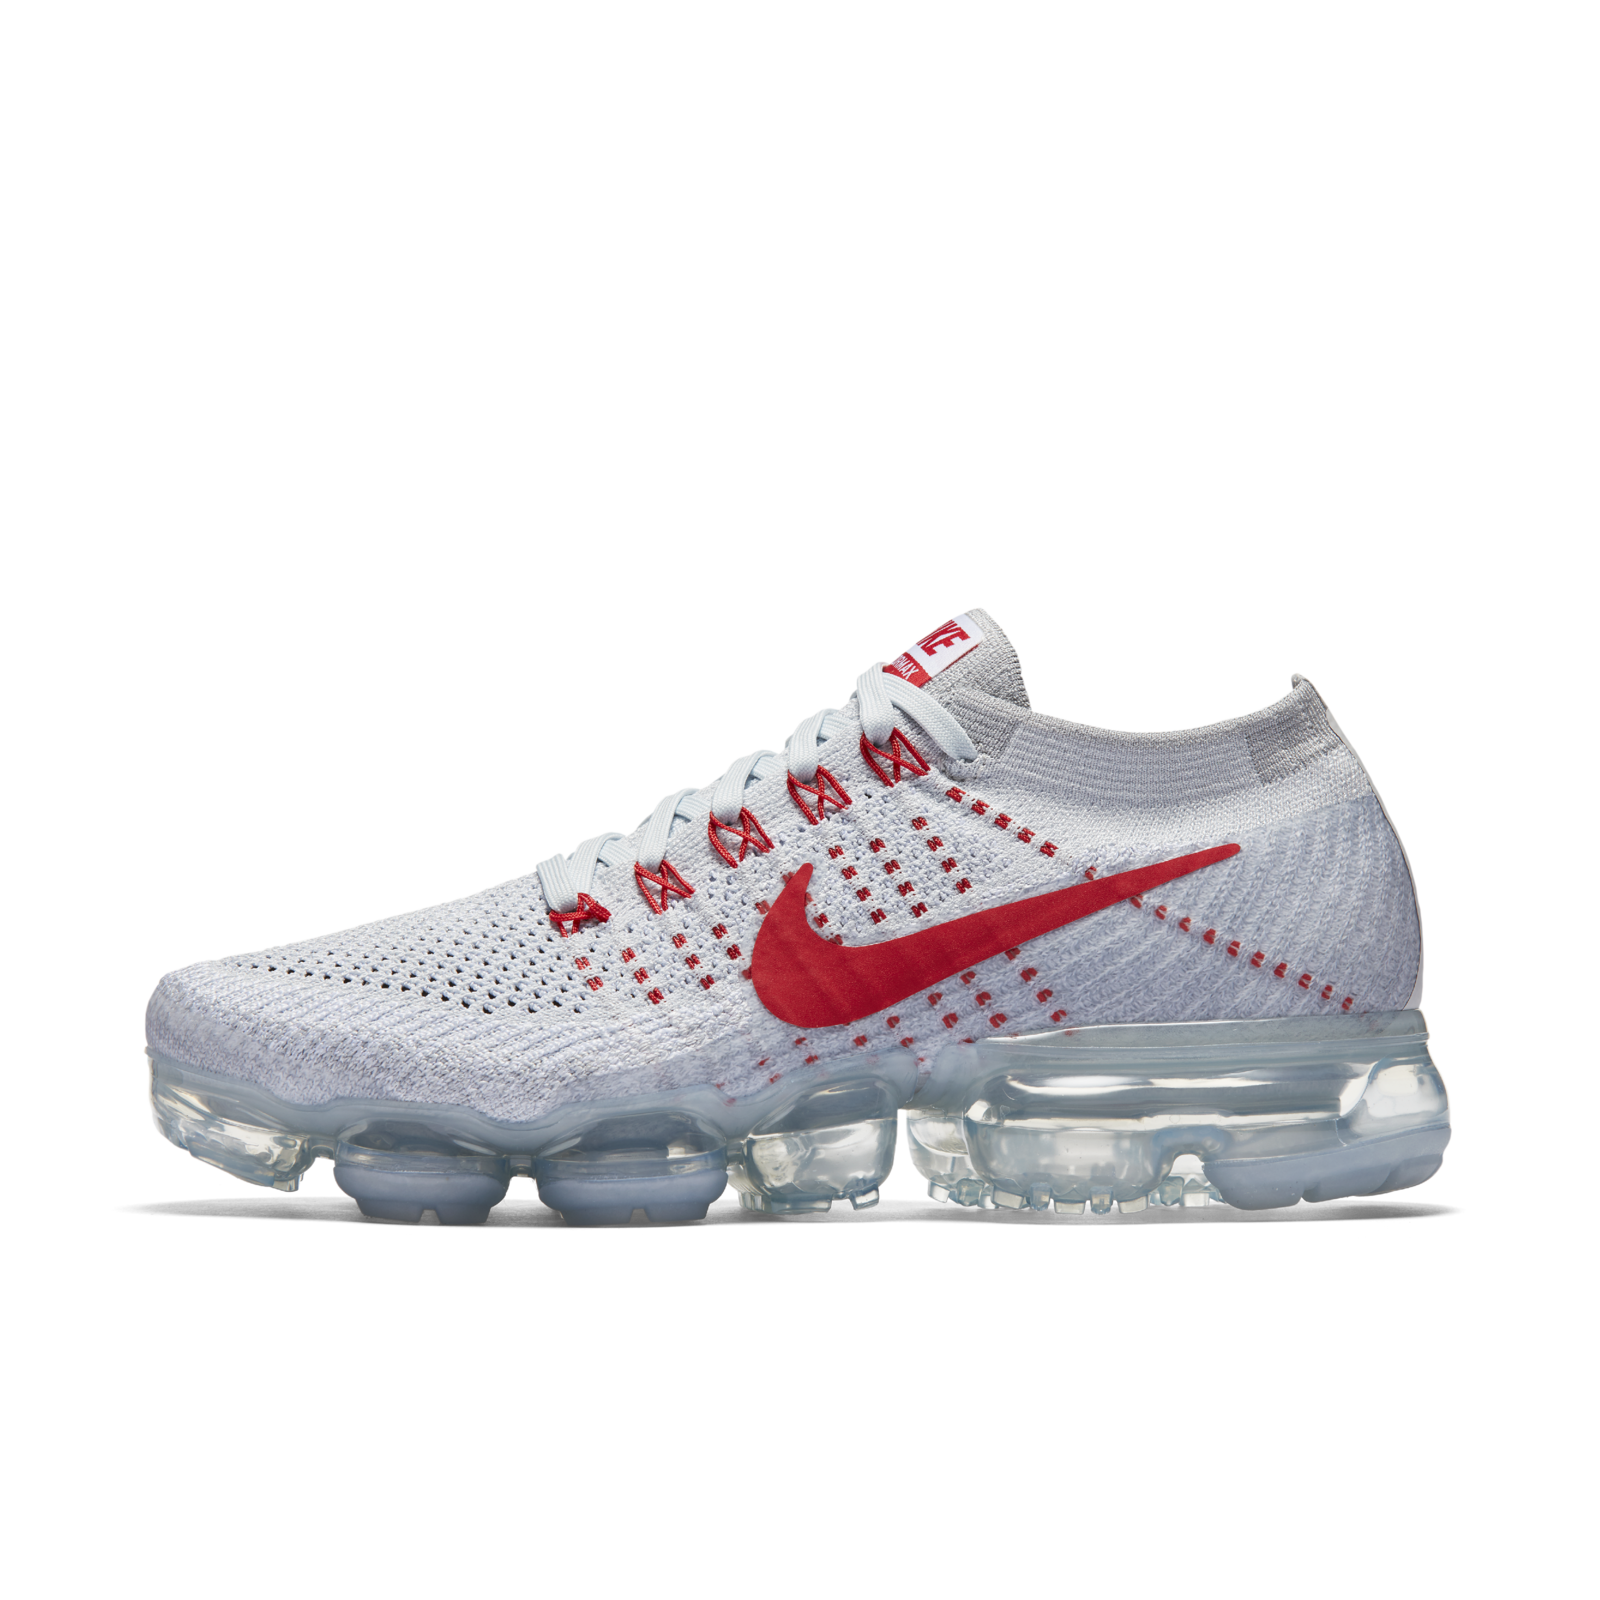 Nike Air VaporMax flyknit running shoe review Yahoo Sports